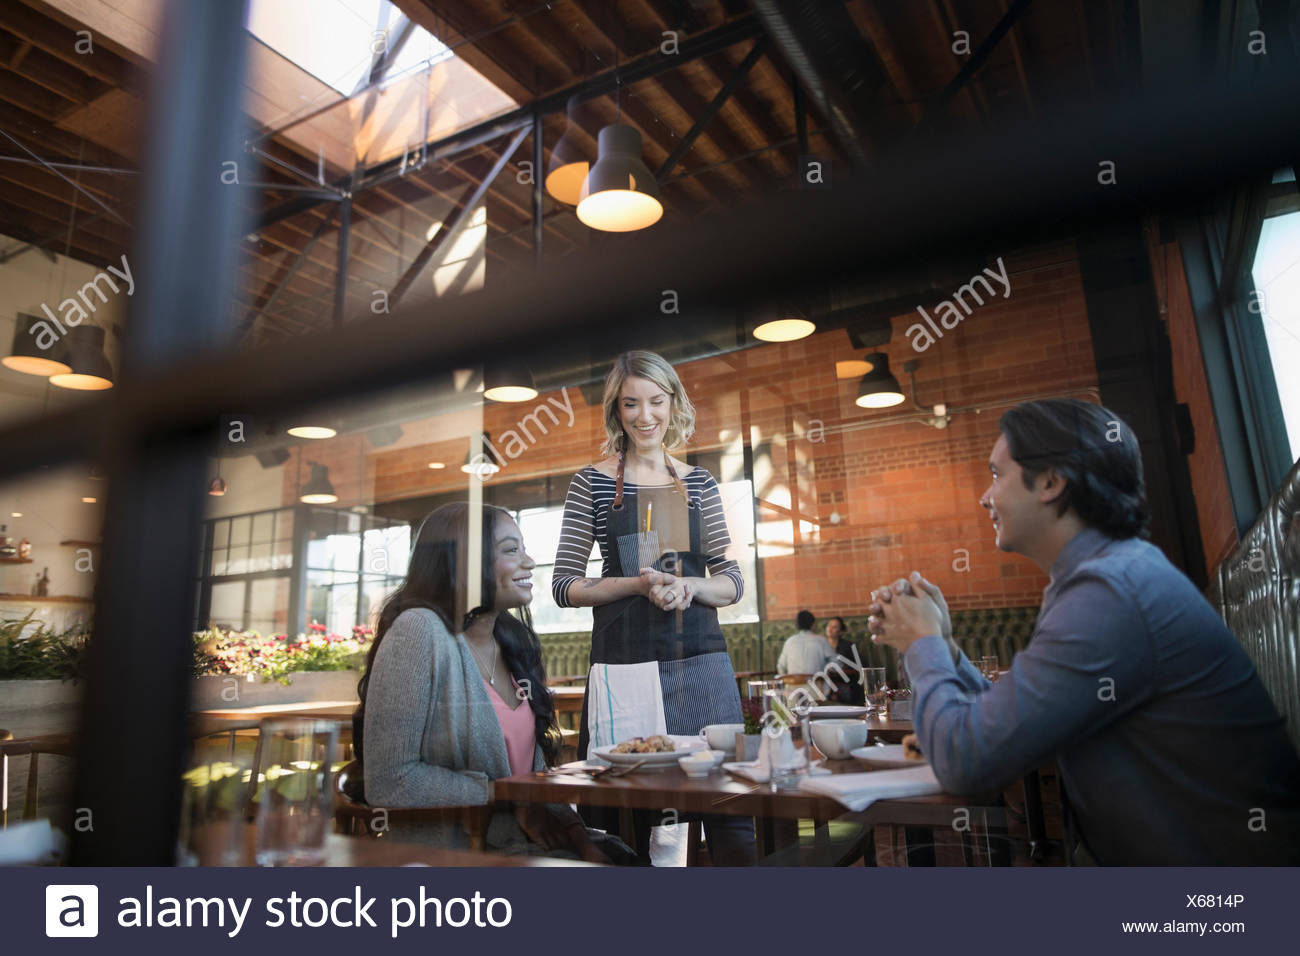 Female server serving food to couple at restaurant table - Stock Image